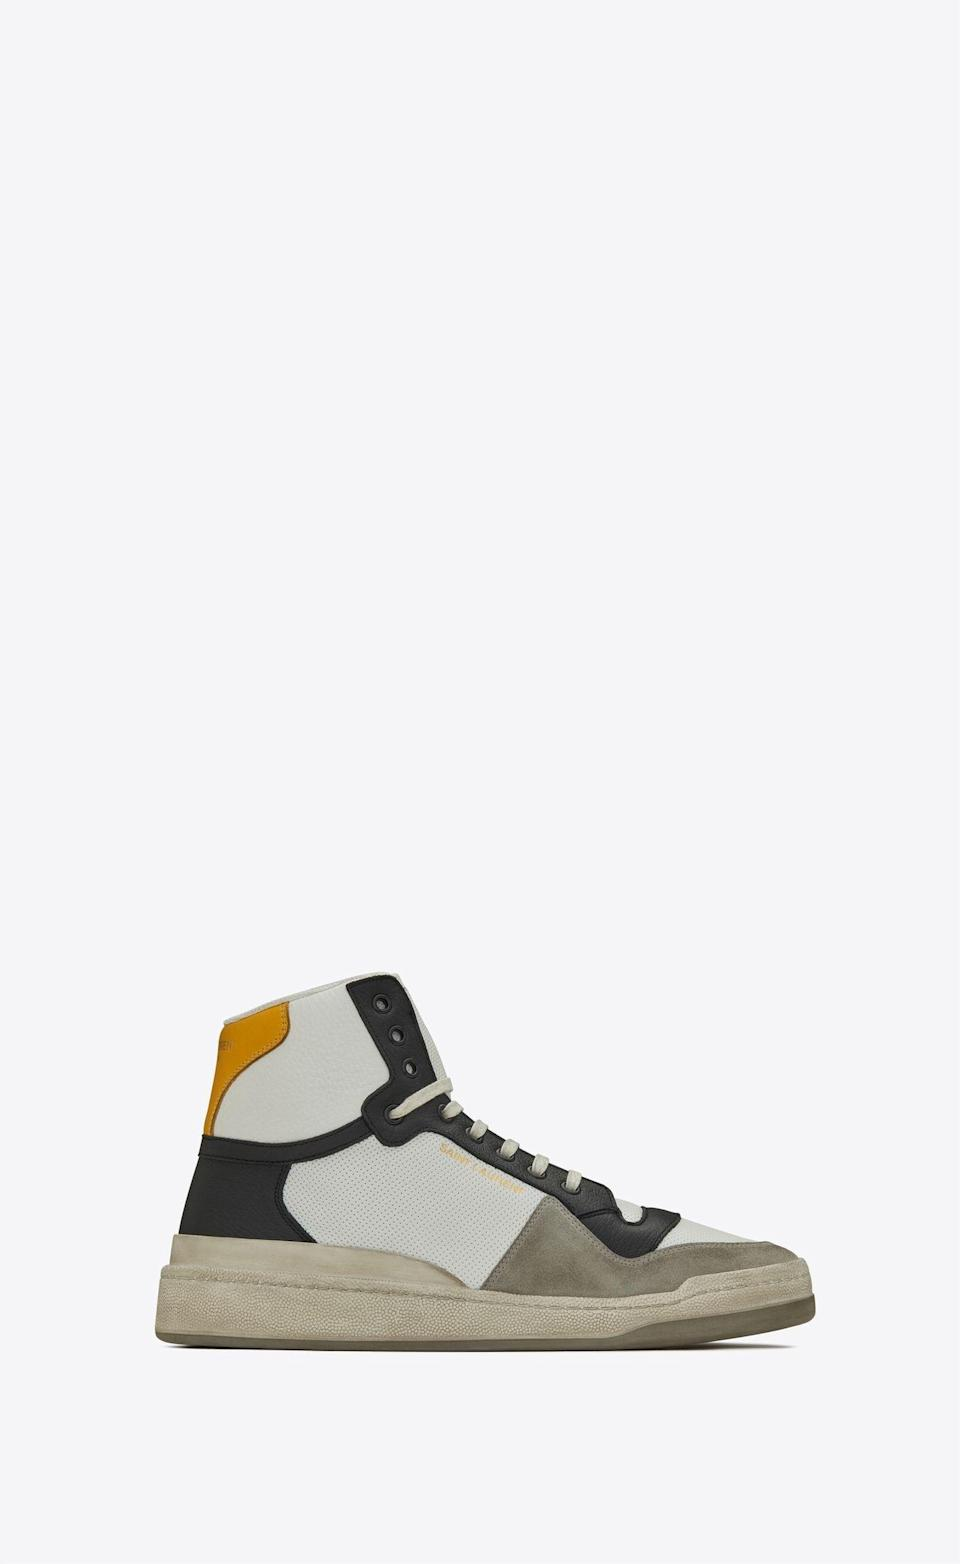 """<p><strong>Saint Laurent</strong></p><p>ysl.com</p><p><strong>$745.00</strong></p><p><a href=""""https://www.ysl.com/us/shop-product/men/shoes-sl24-shoes-sl24-sneakers-in-perforated-leather-and-suede_cod11901170uu.html"""" rel=""""nofollow noopener"""" target=""""_blank"""" data-ylk=""""slk:Shop Now"""" class=""""link rapid-noclick-resp"""">Shop Now</a></p><p>Saint Laurent serving up yet another pair of cool-as-hell, high-end sneakers? Not exactly shocking, but very welcome, nonetheless.</p>"""